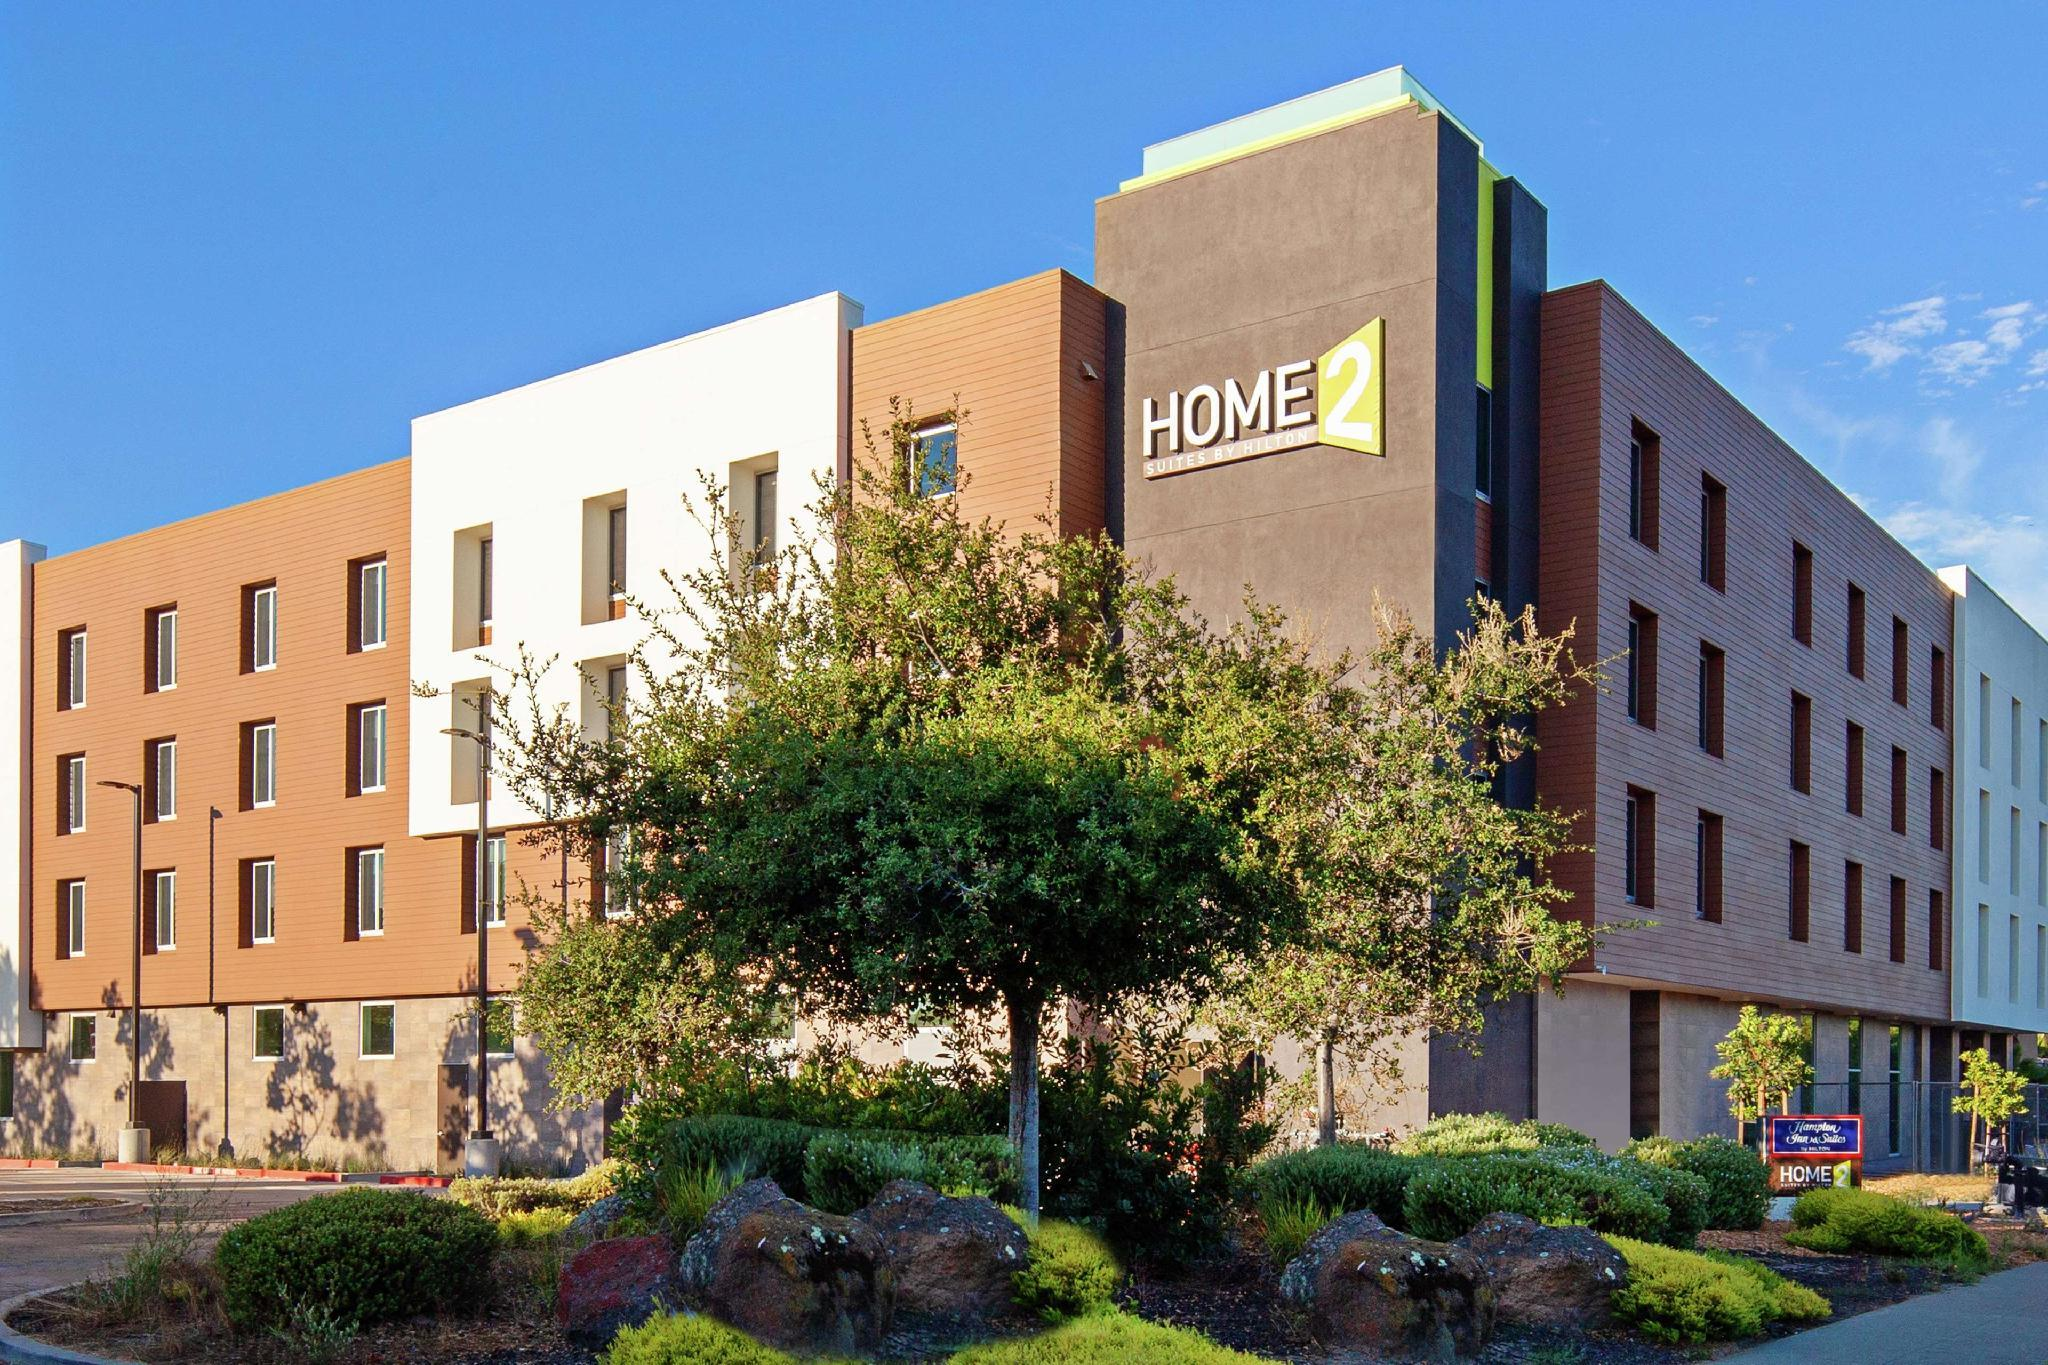 Home2 Suites By Hilton Alameda Oakland Airport